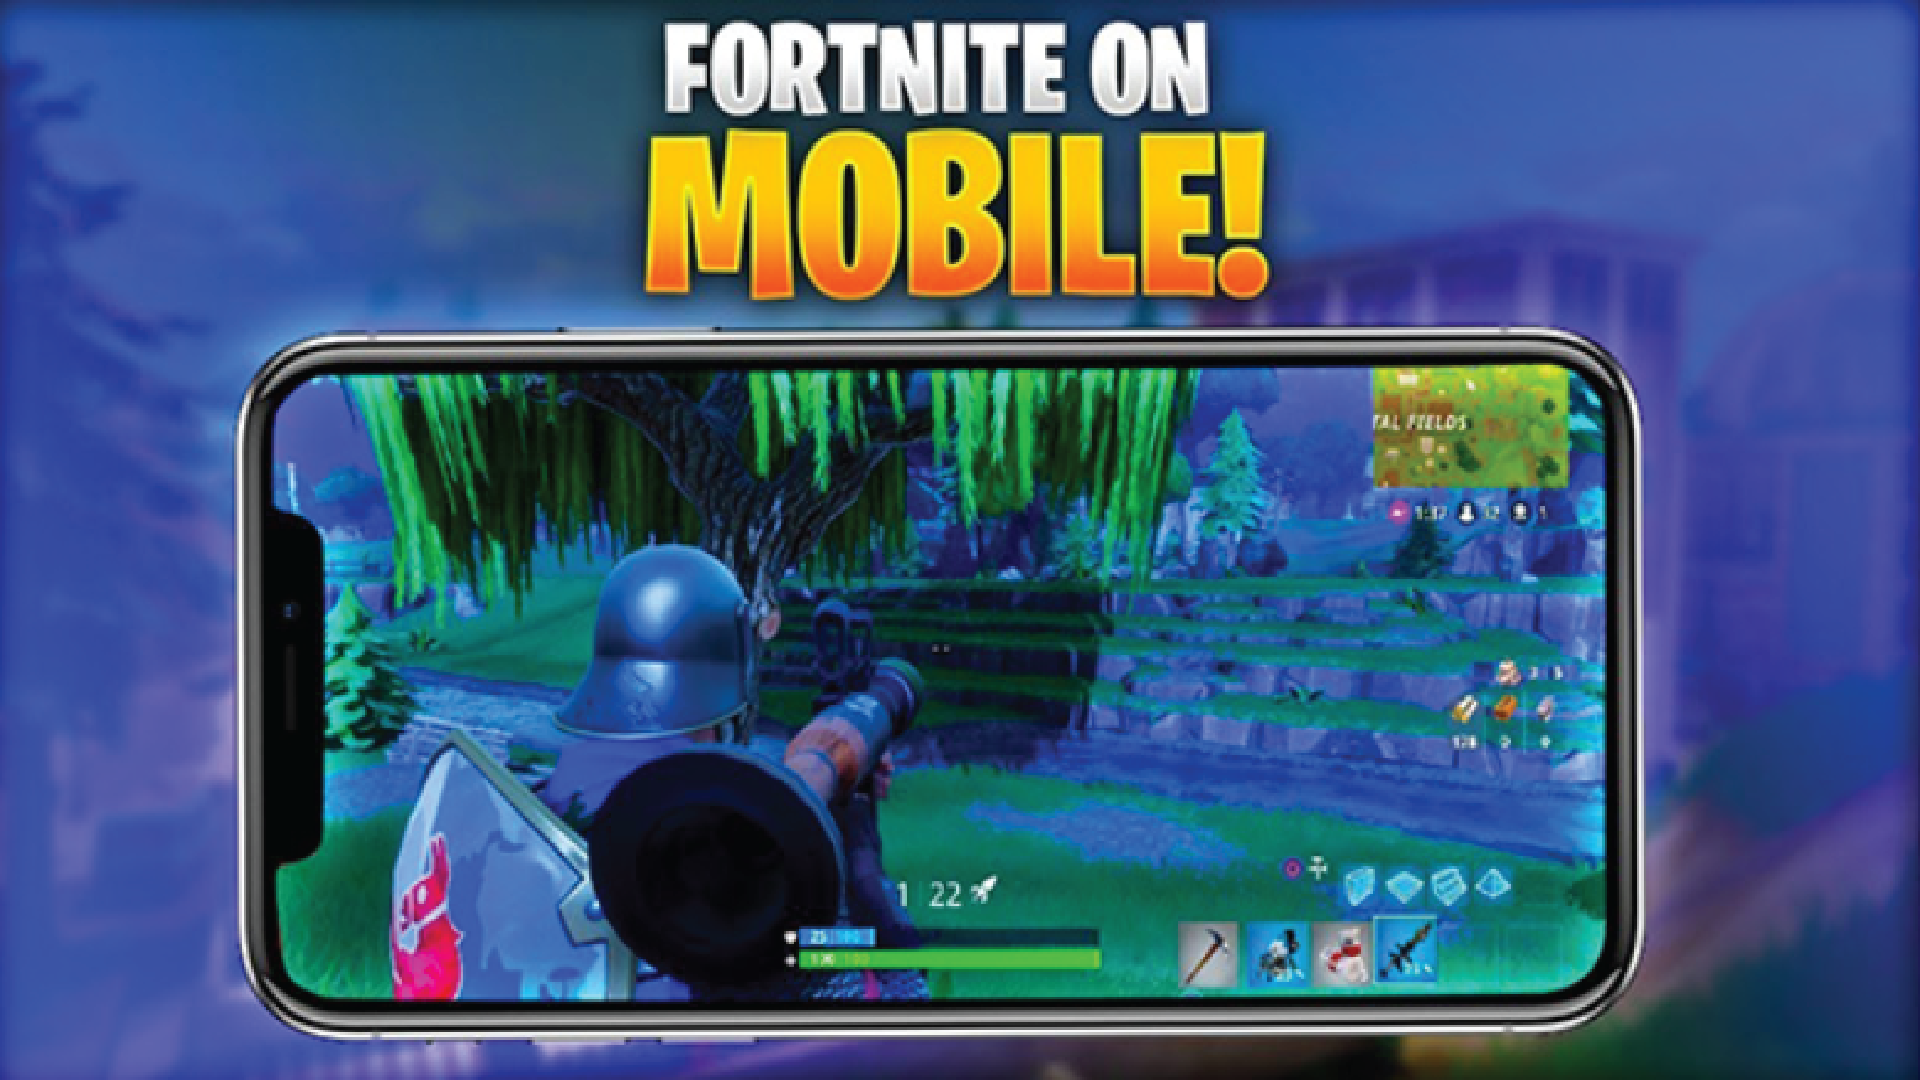 Install Fortnite Apk Fix Device Not Supported For OPPO